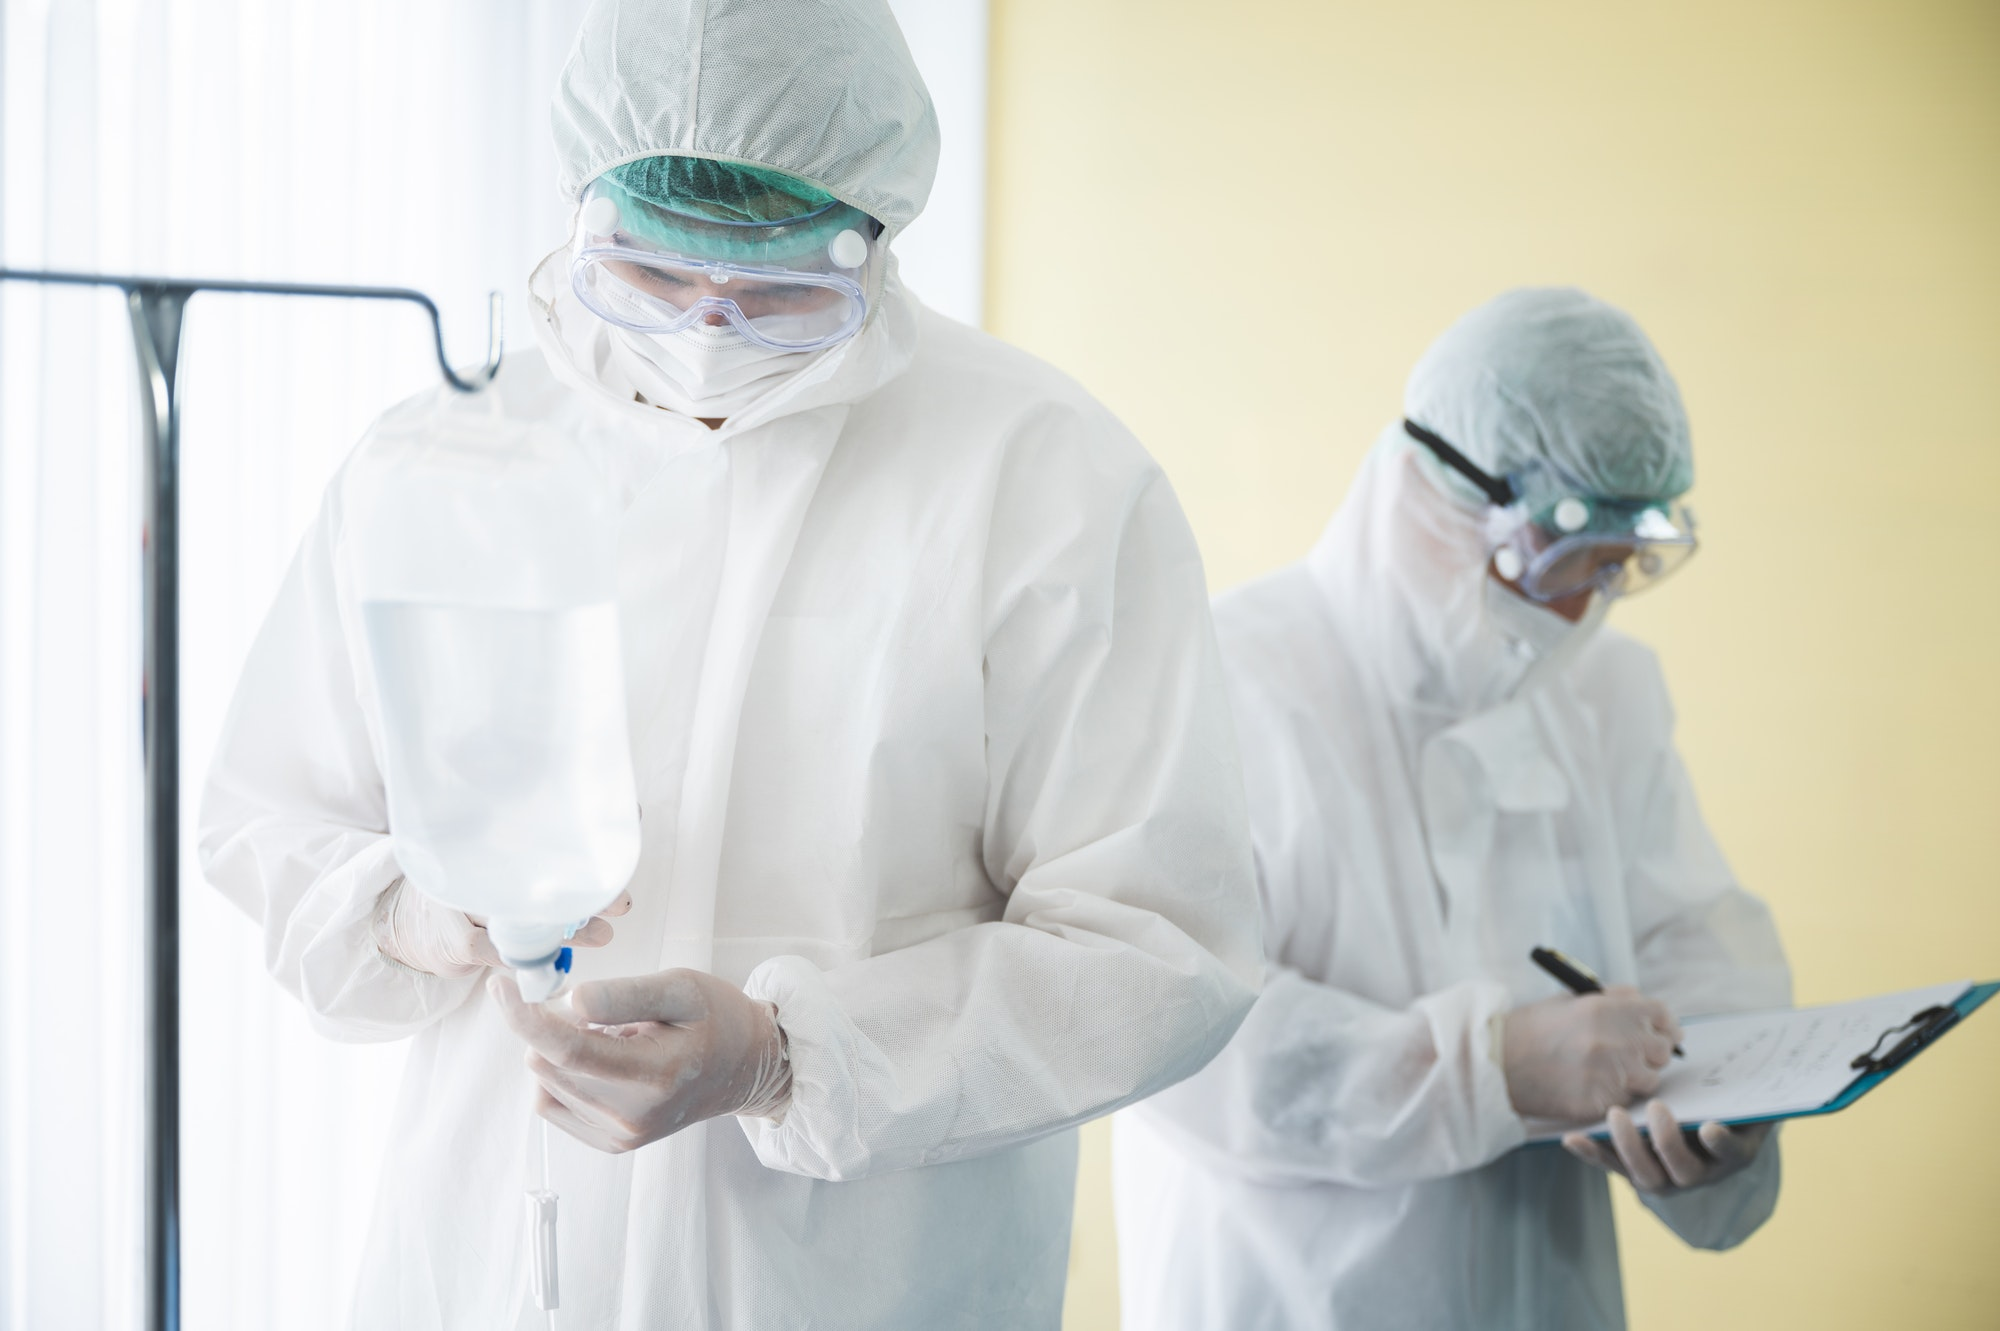 scientist doctor in PPE suit and goggles and mask to corona virus covid-19 protection